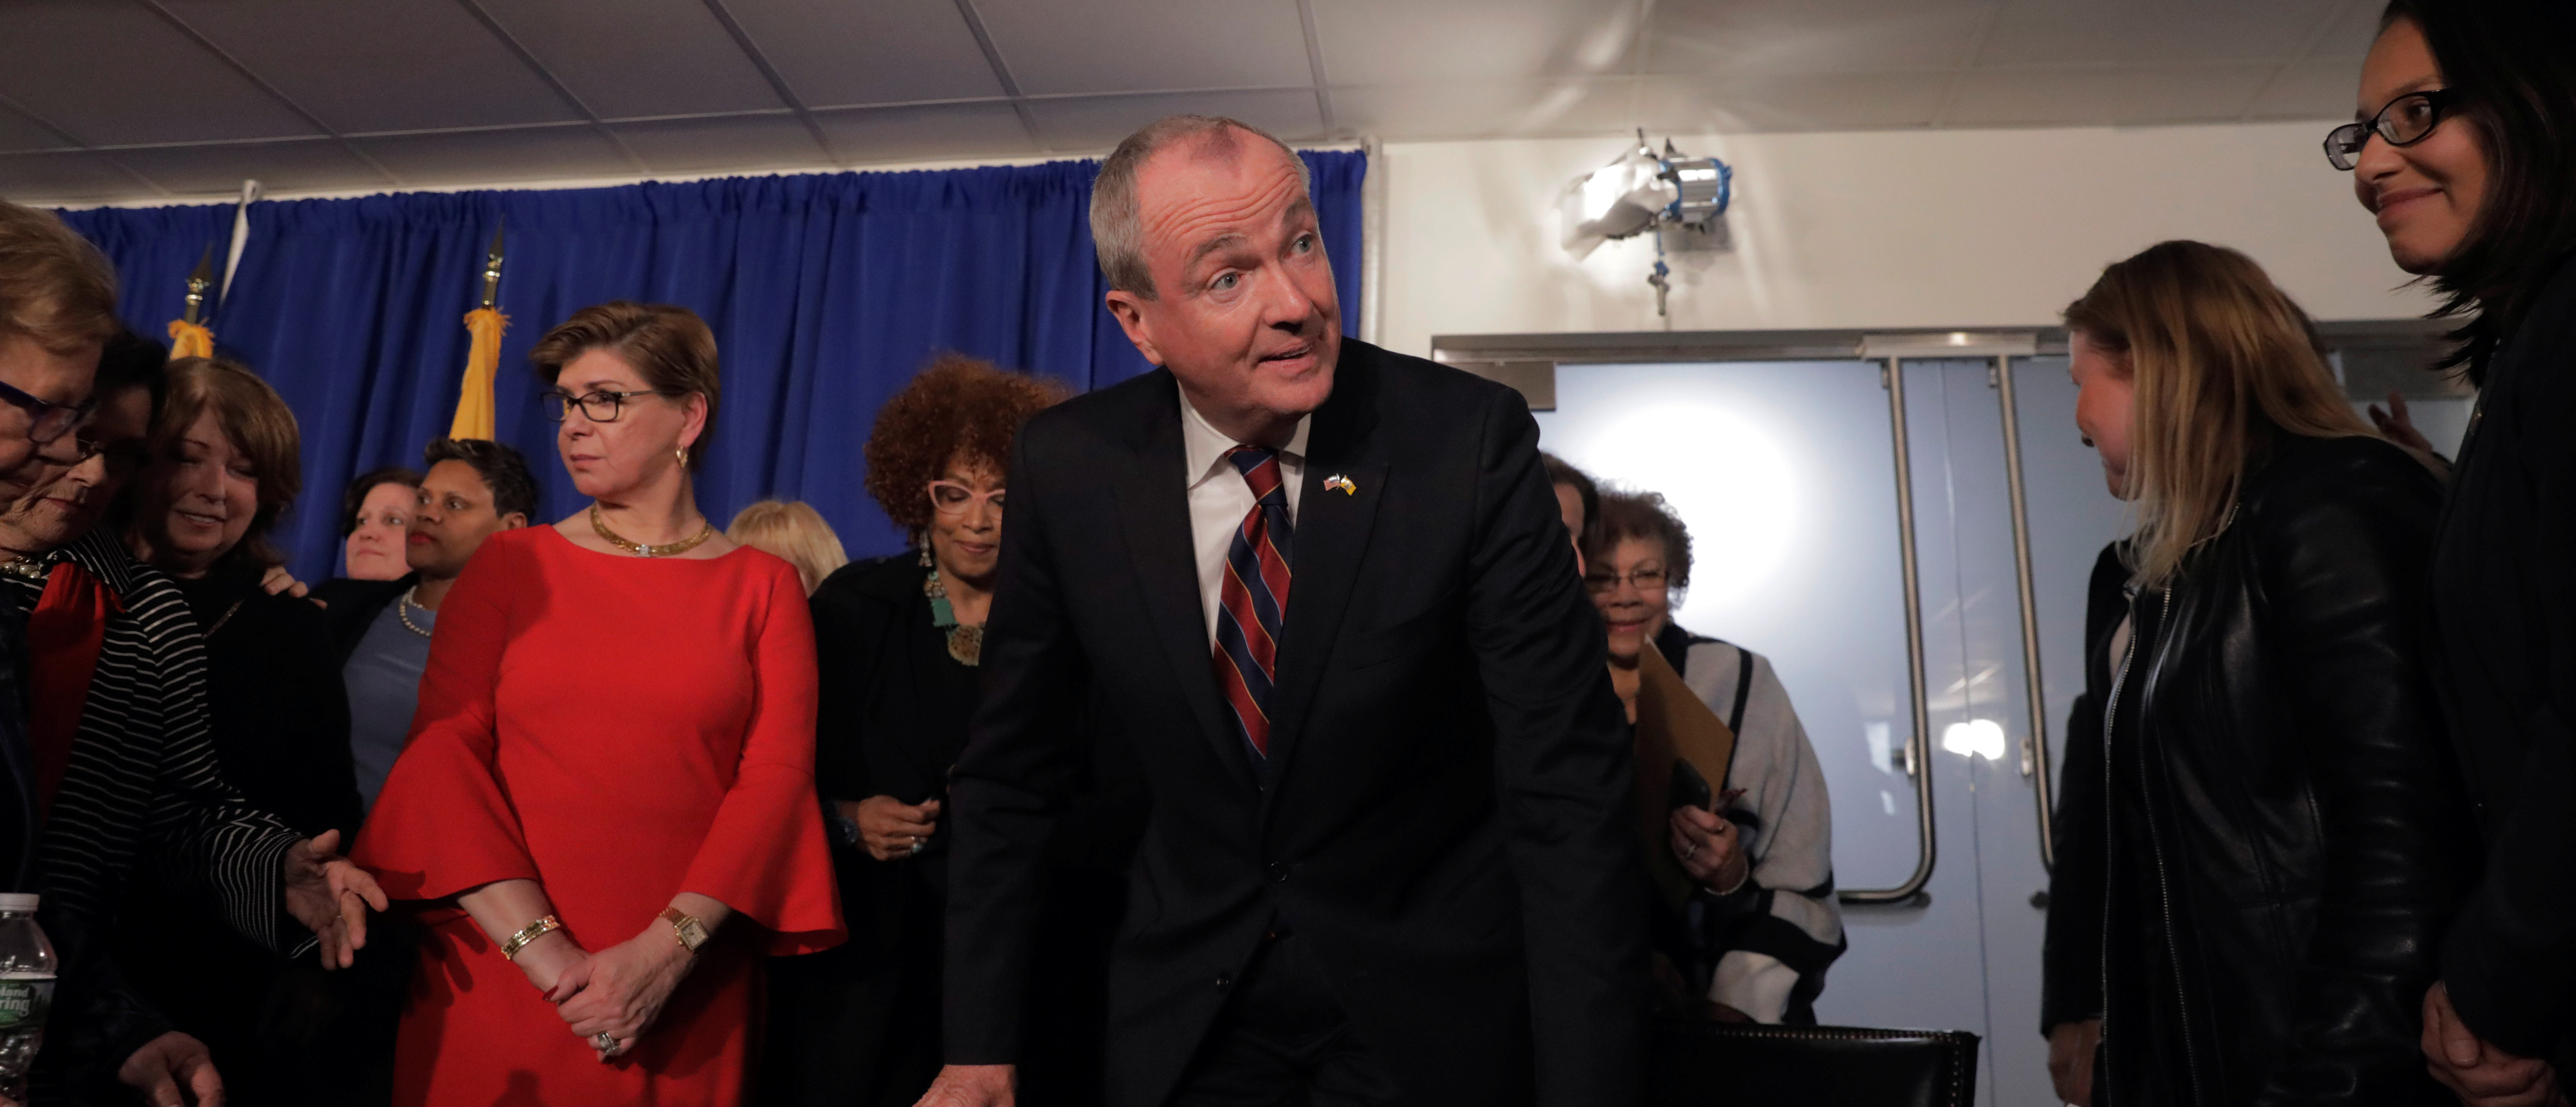 New Jersey Governor Phil Murphy takes part in a signing ceremony for his first executive order the day he took his oath of office in Trenton, New Jersey, U.S., January 16, 2018. REUTERS/Lucas Jackson